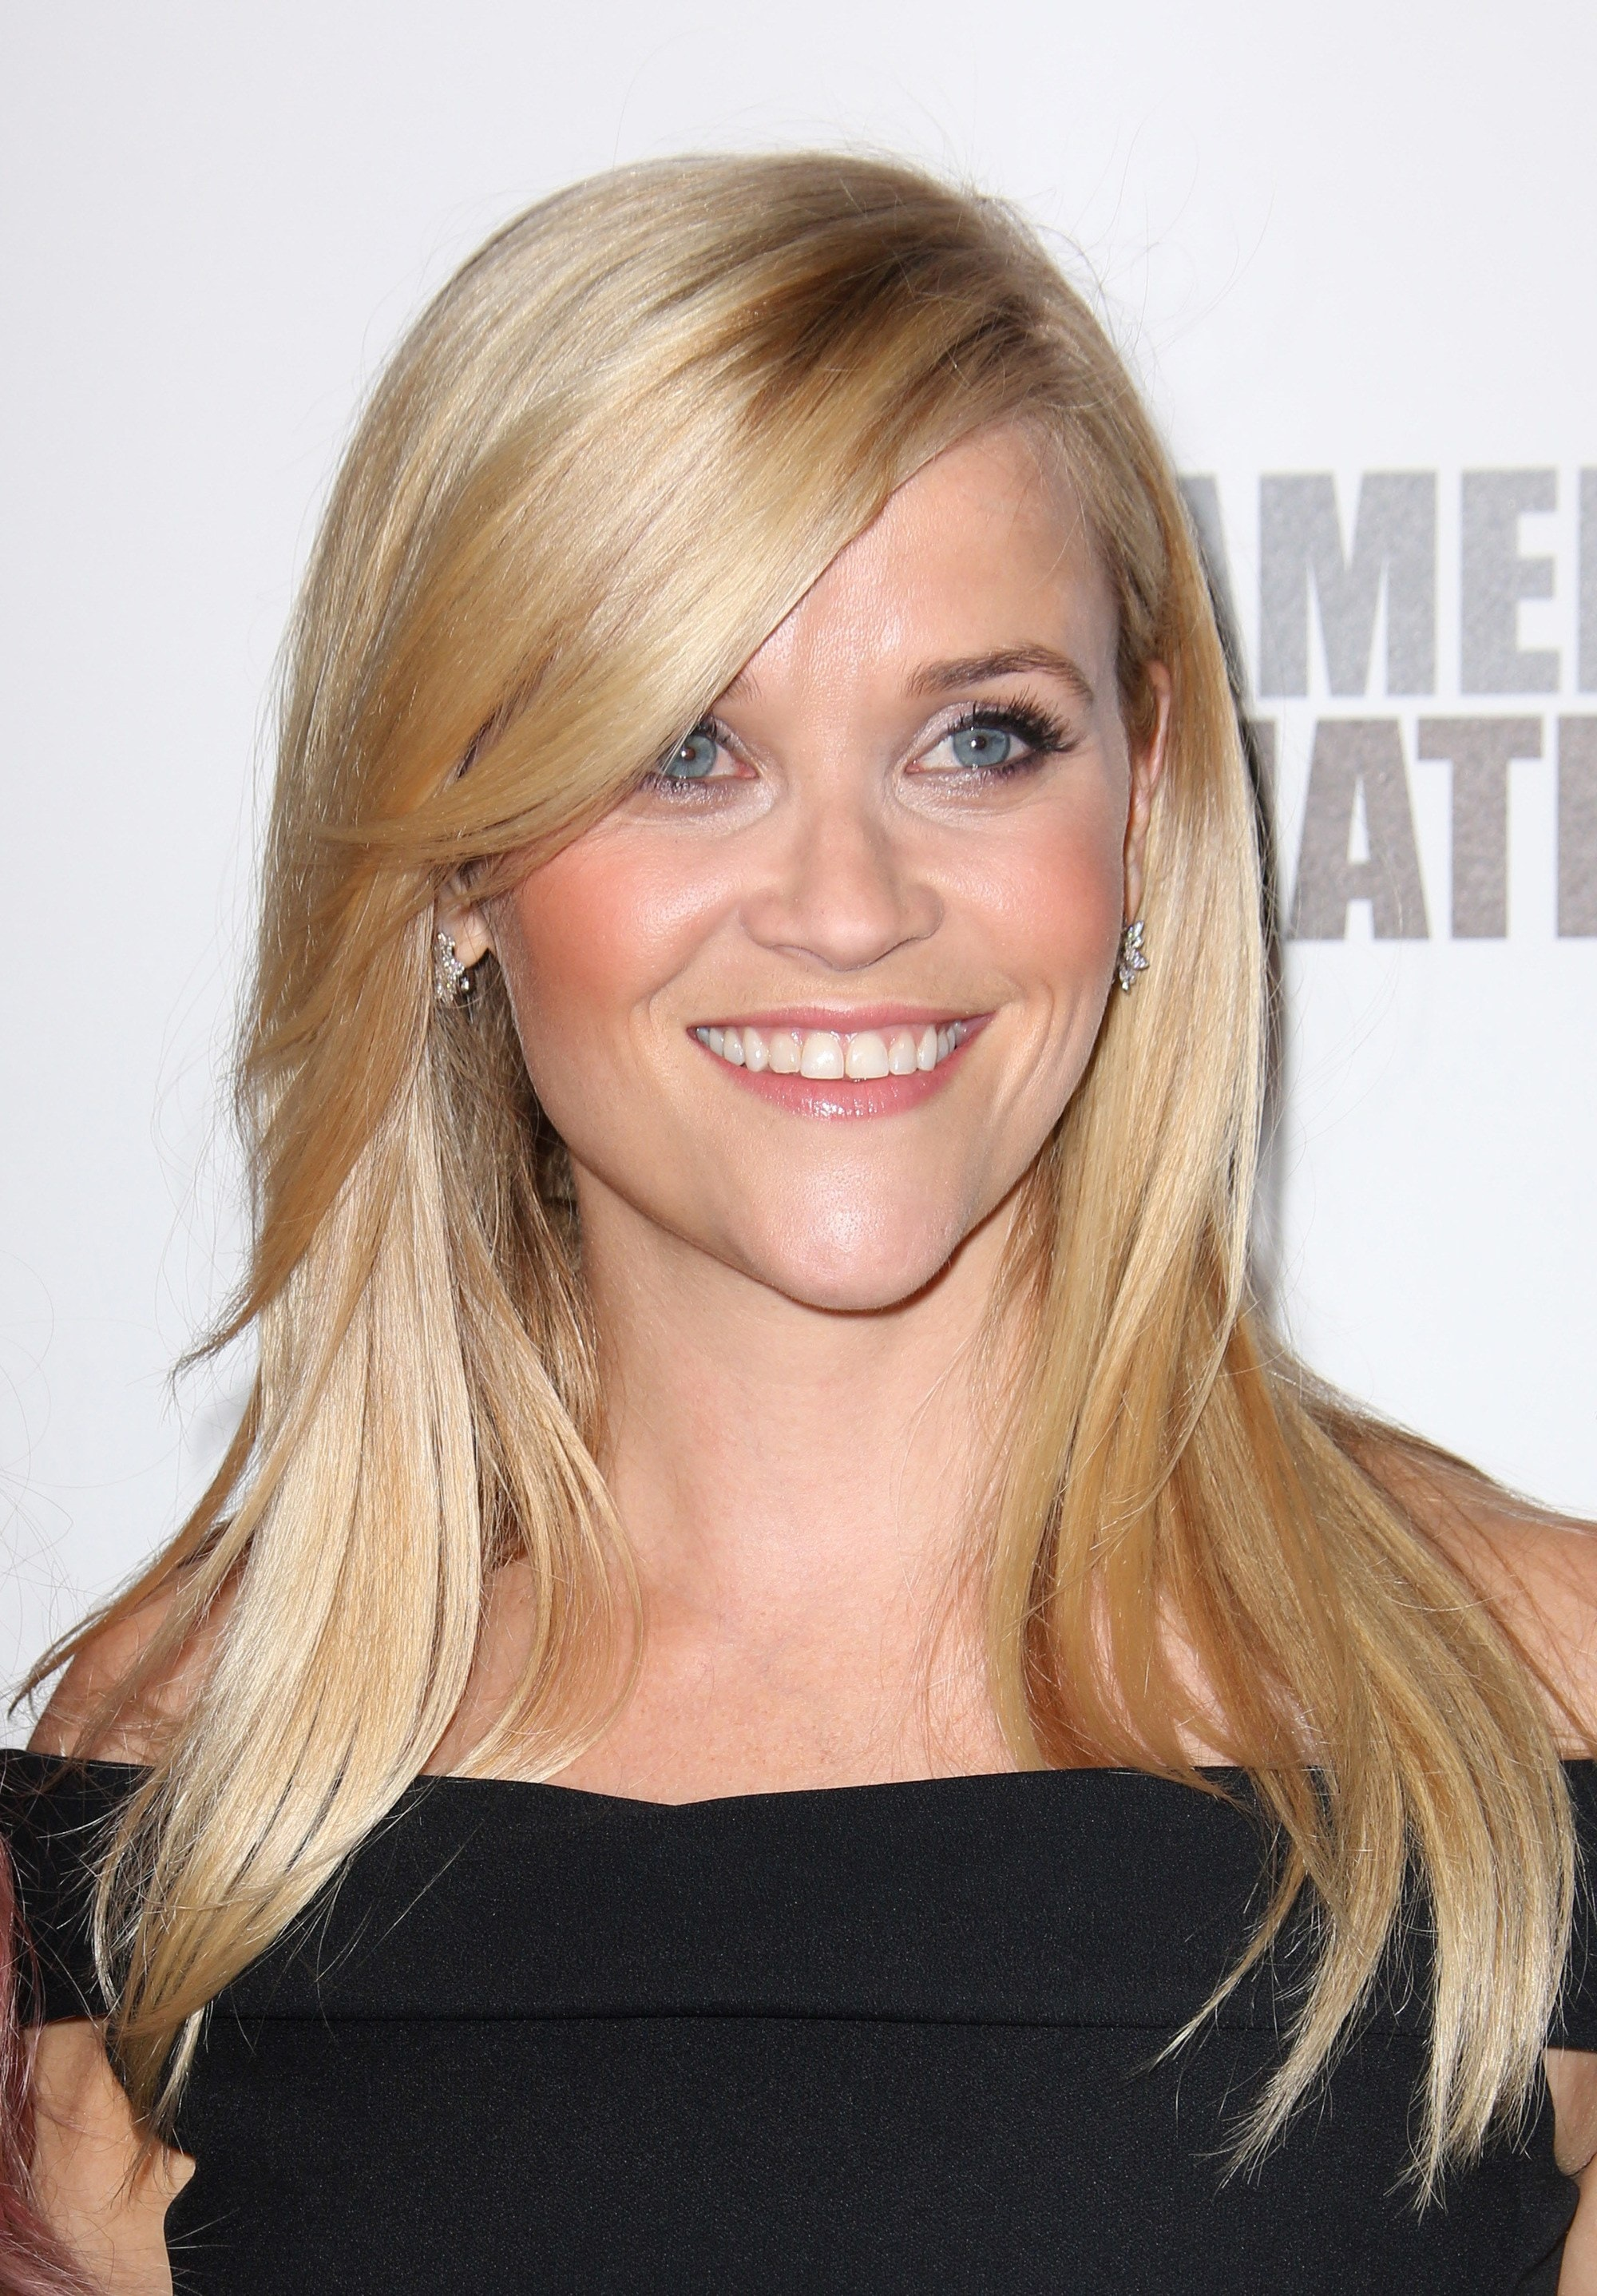 Swoop Bangs The Reese Witherspoon Look Making Us Want Side Fringes